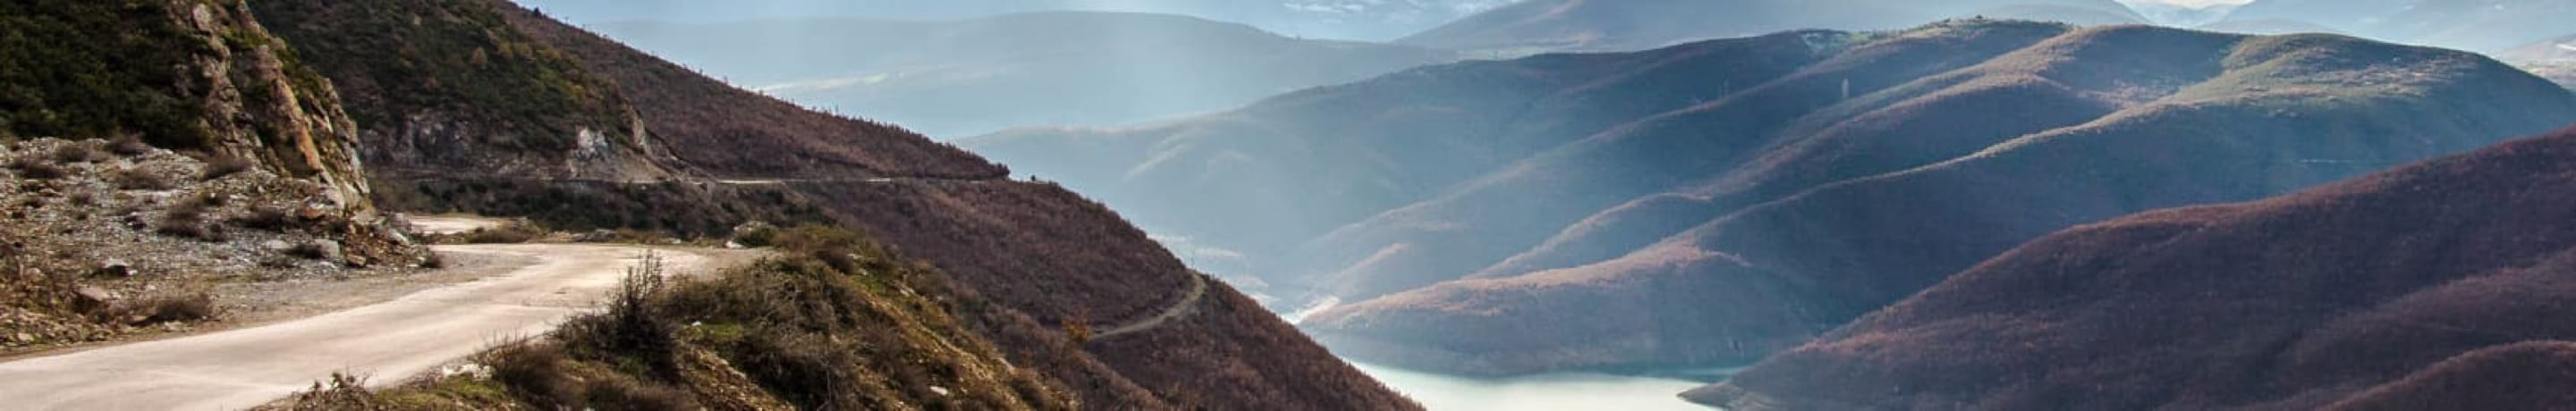 A twisting road cut into the side of a mountain, with a steep dropoff to the river below.